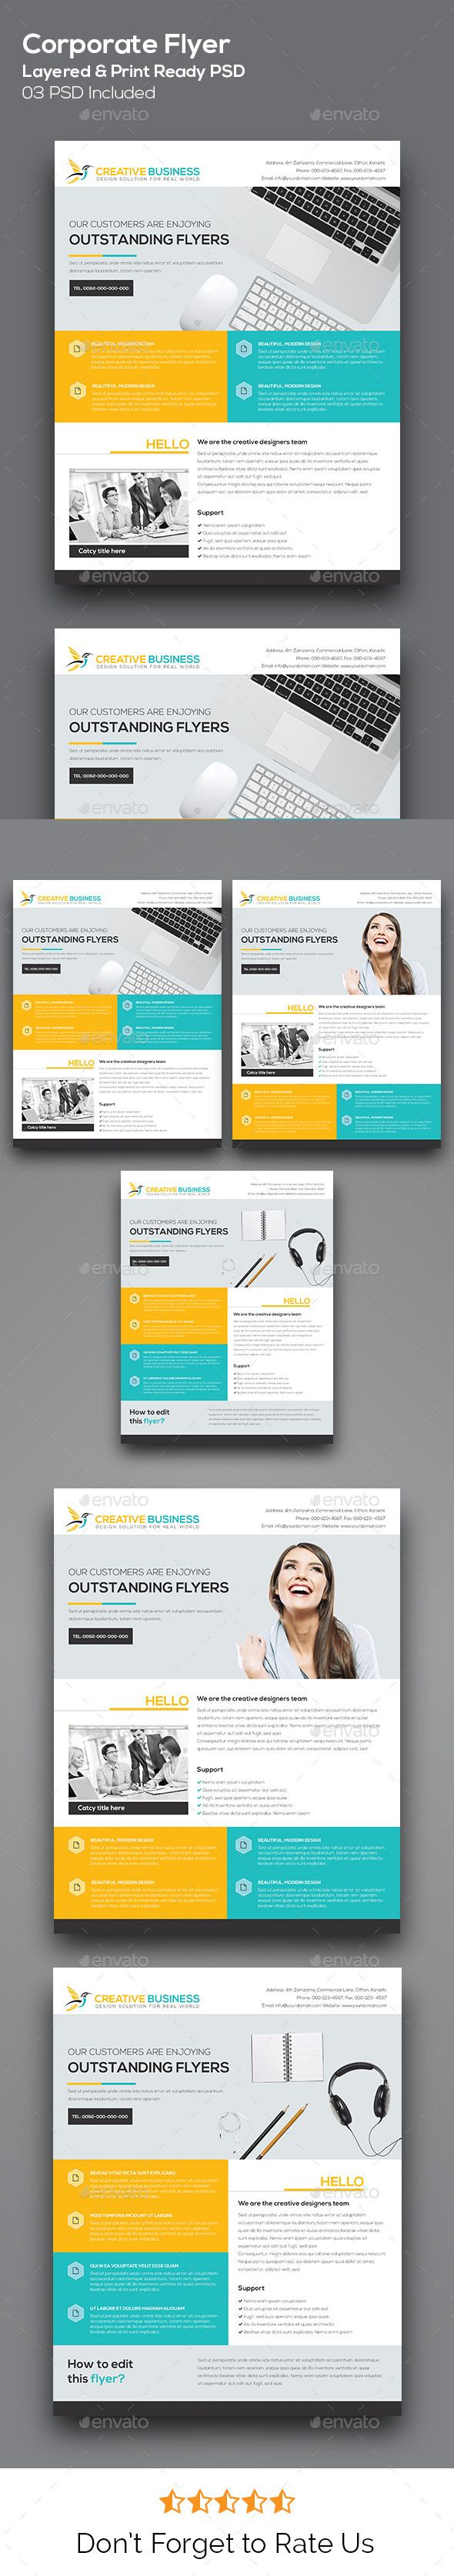 Corporate Flyer / Corporate Business Flyer Template for Promoting business services based campaign. Everything is layered, grouped and well organised. Easy to edit the text, color & image. Simply edit the text & place the logo.